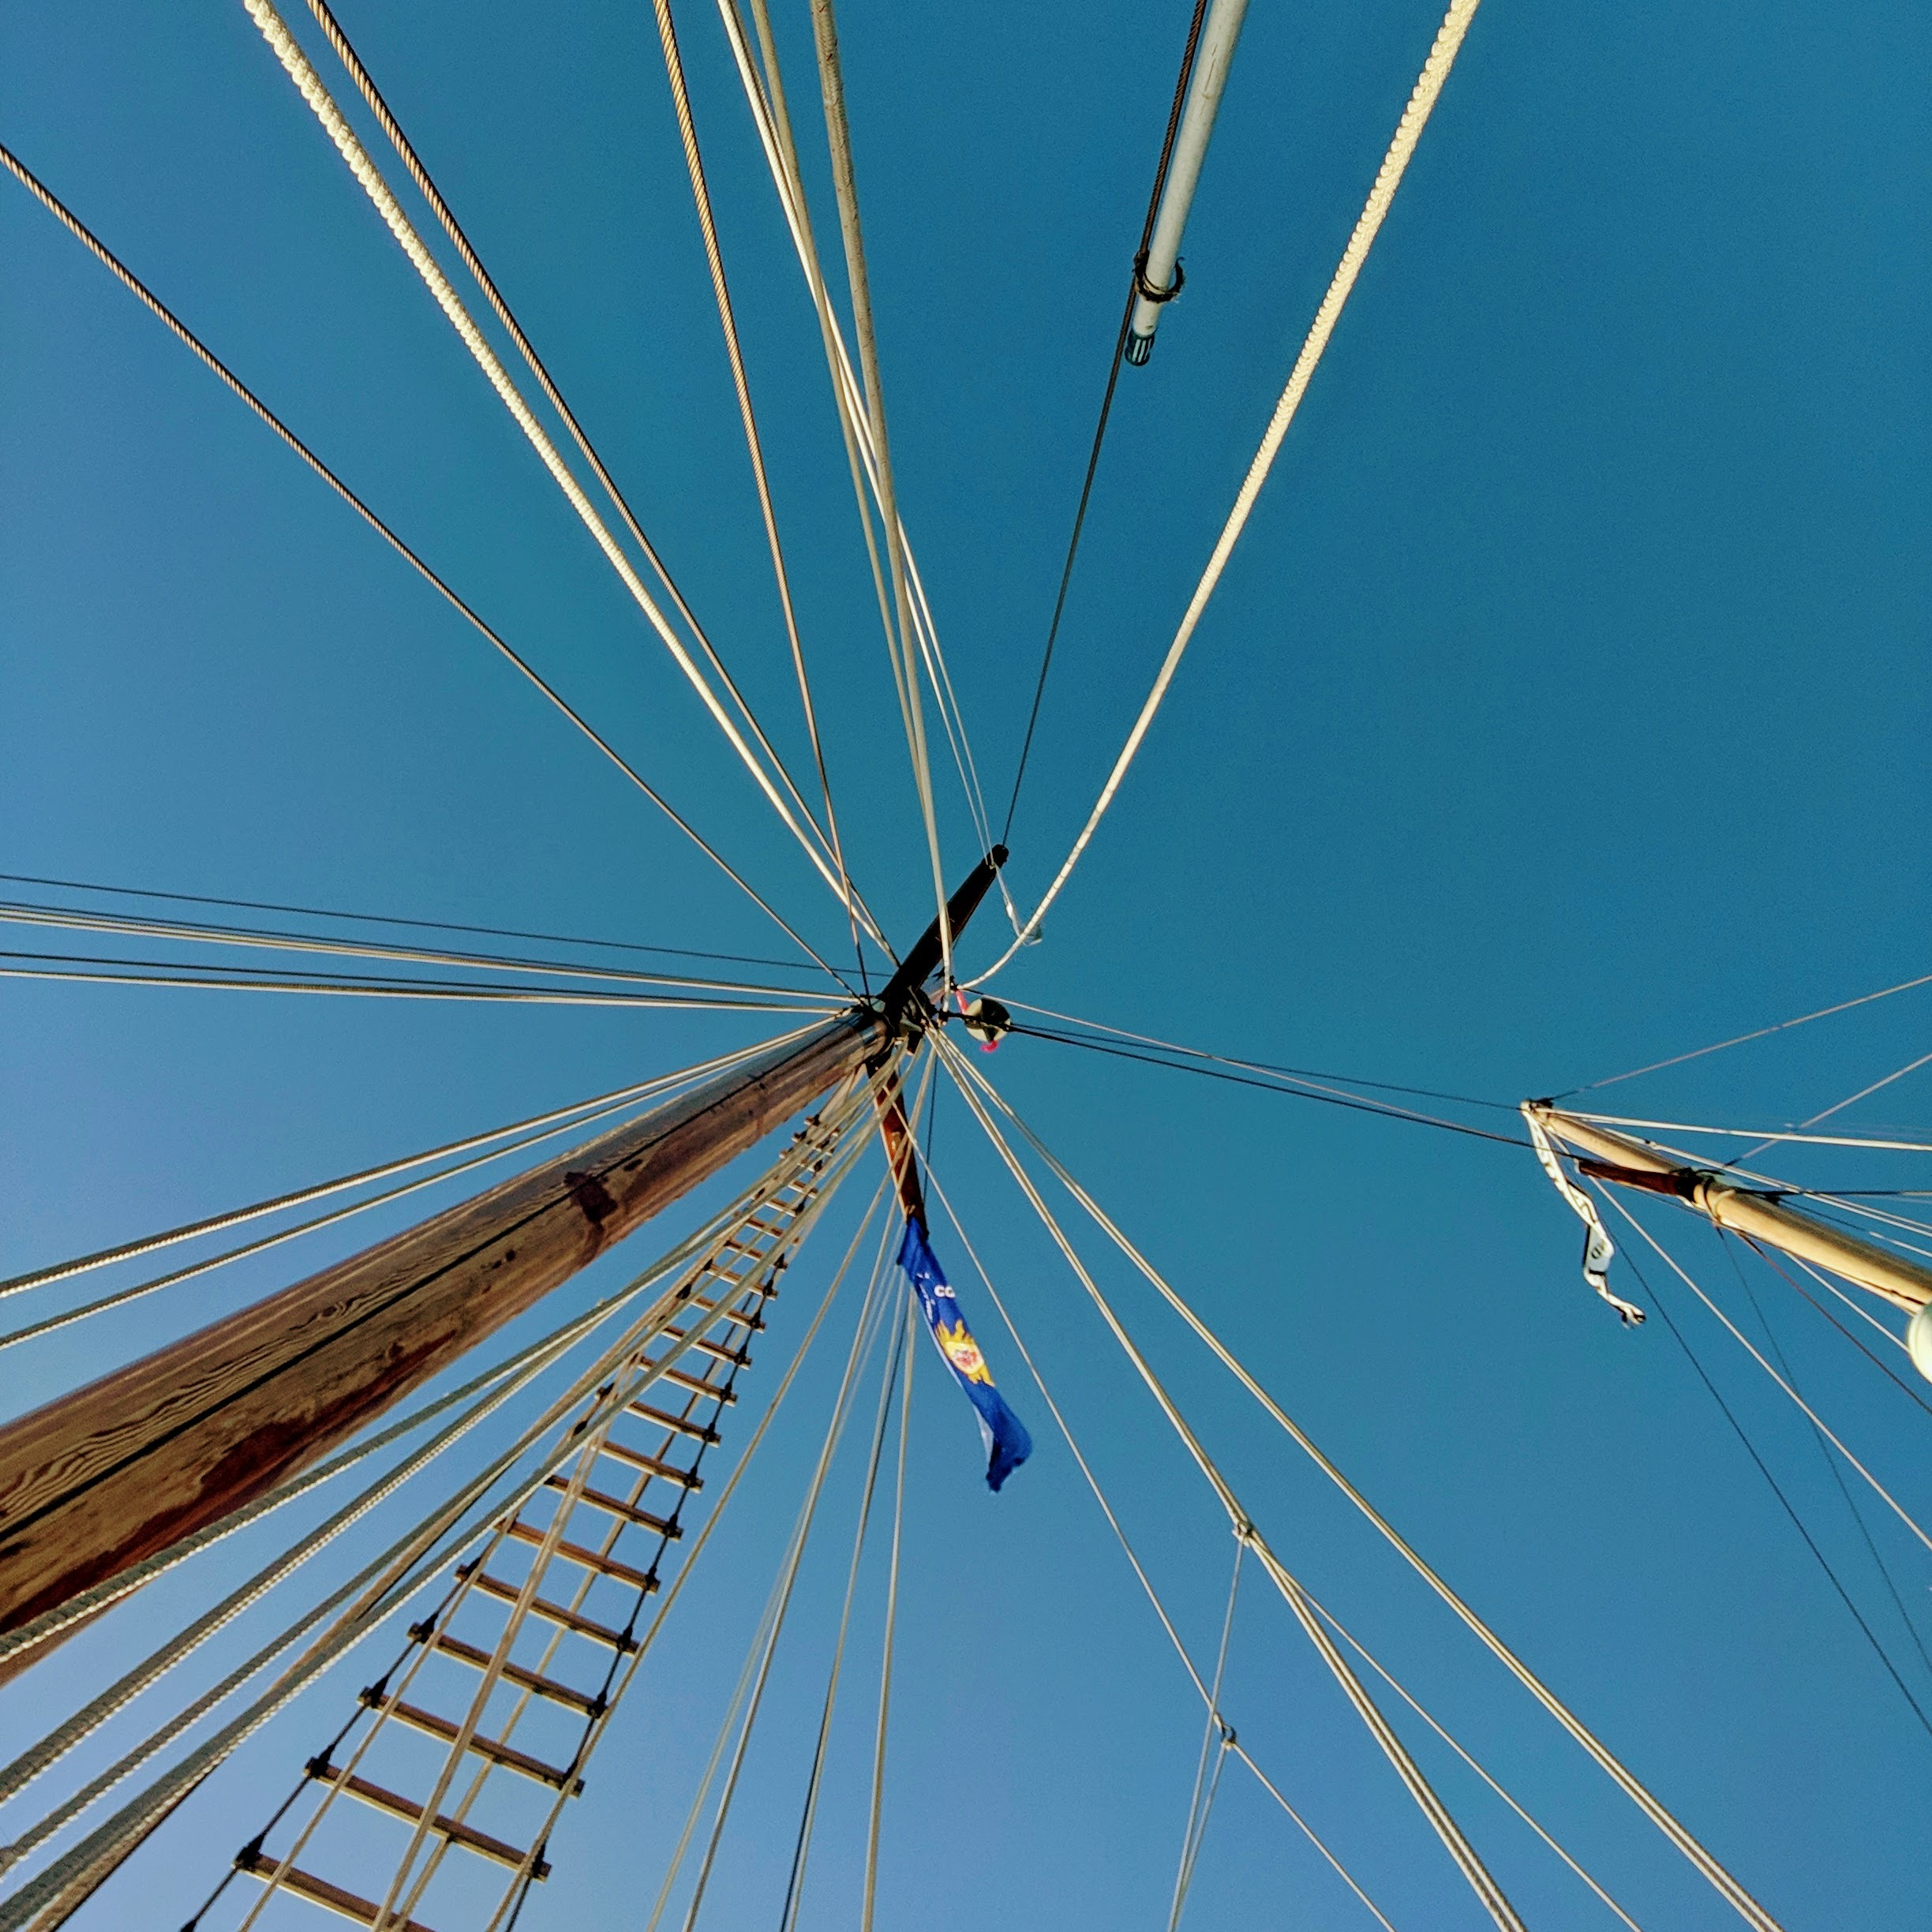 Image of a sail boats mast with ropes coming from it. A indistinguishable flag is flown on the mast.